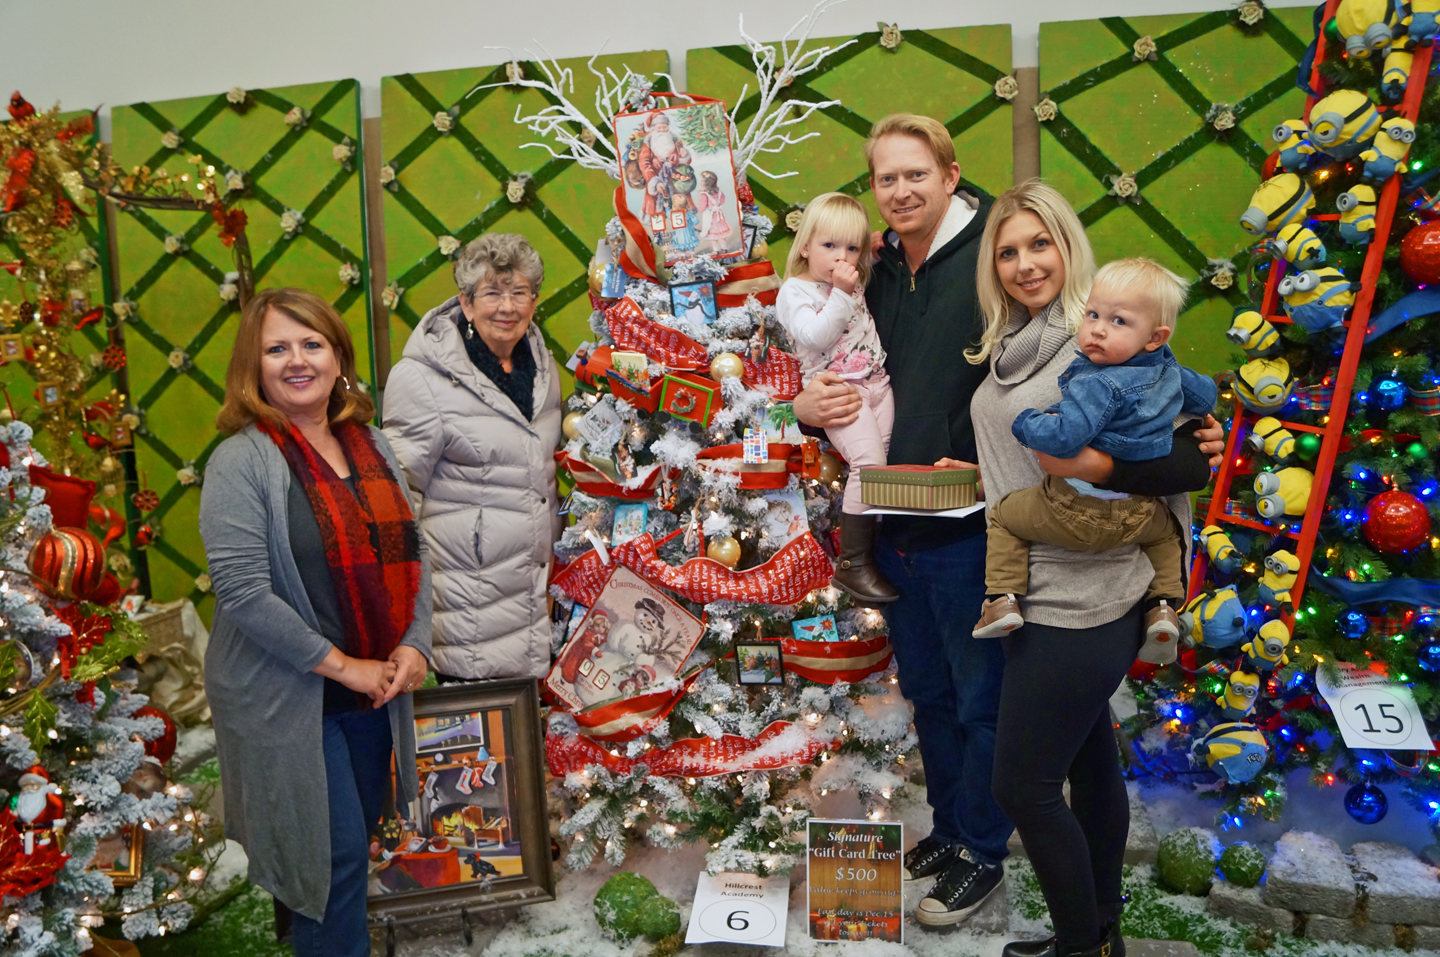 HFHIV Executive Director Tammy Marine and CTL Chairperson Vicki Puterbaugh stand with the winning family of the Gift Card Tree.